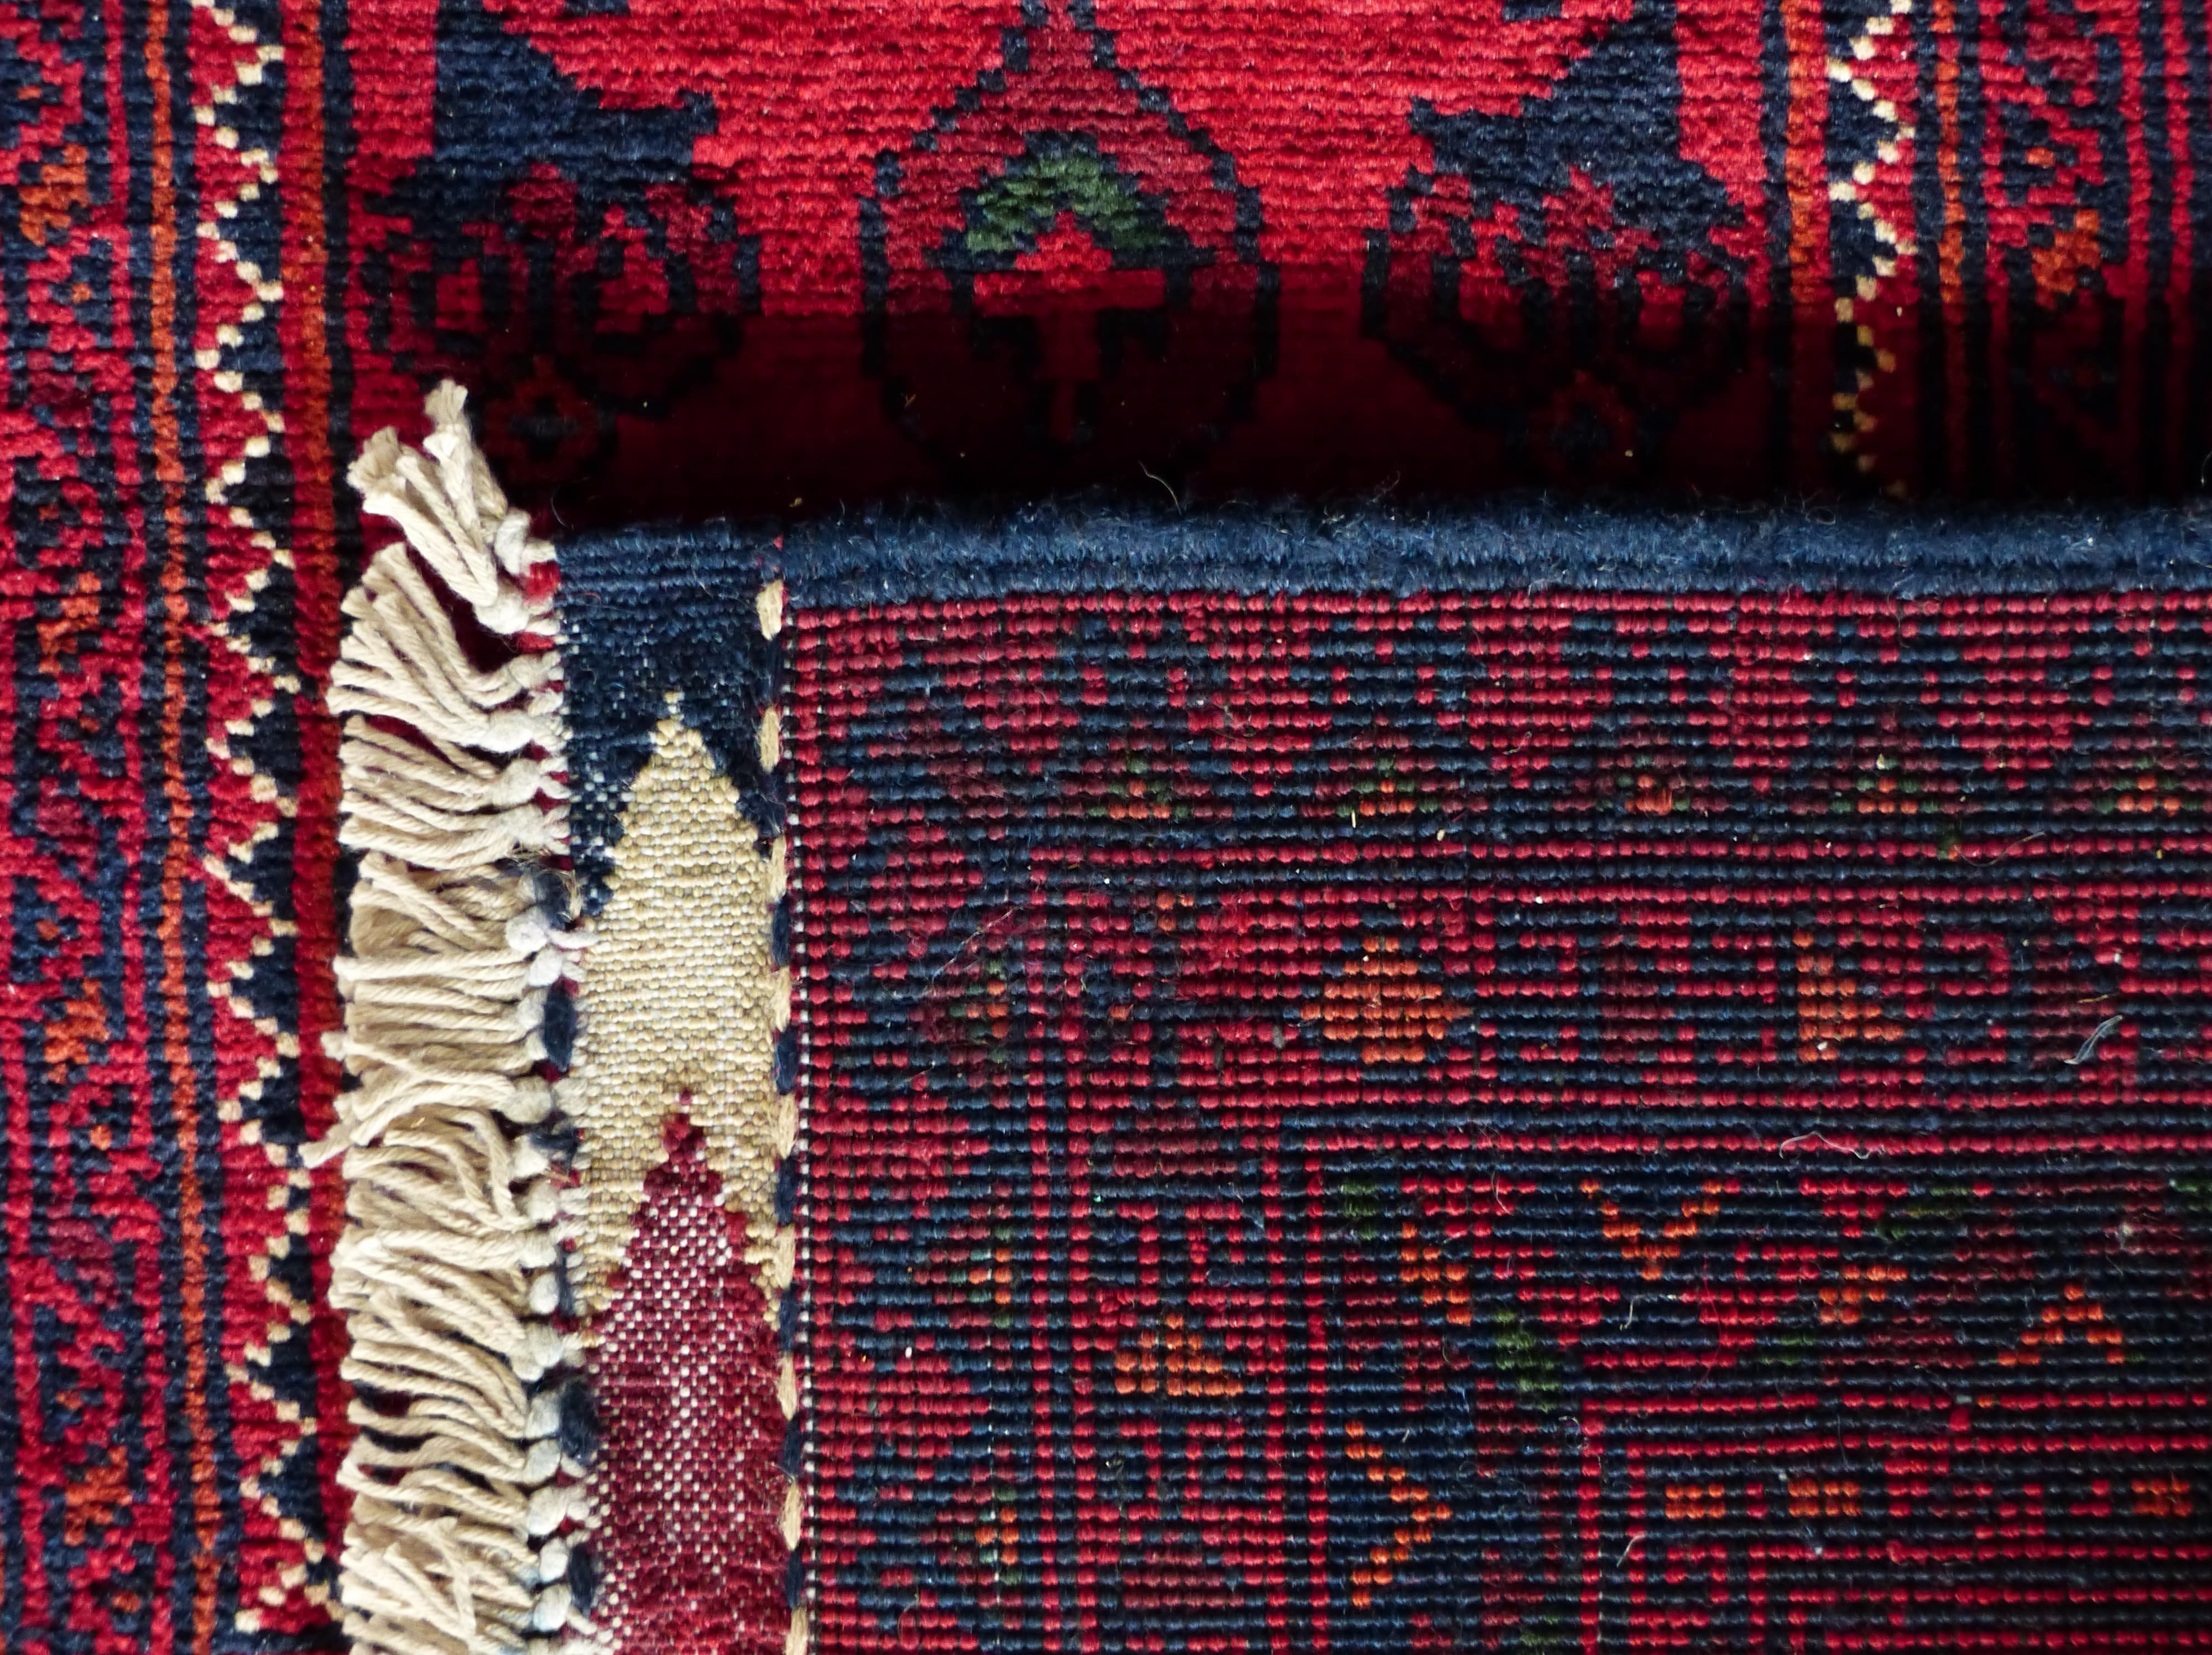 carpet_redfftyu_tying-min.jpg